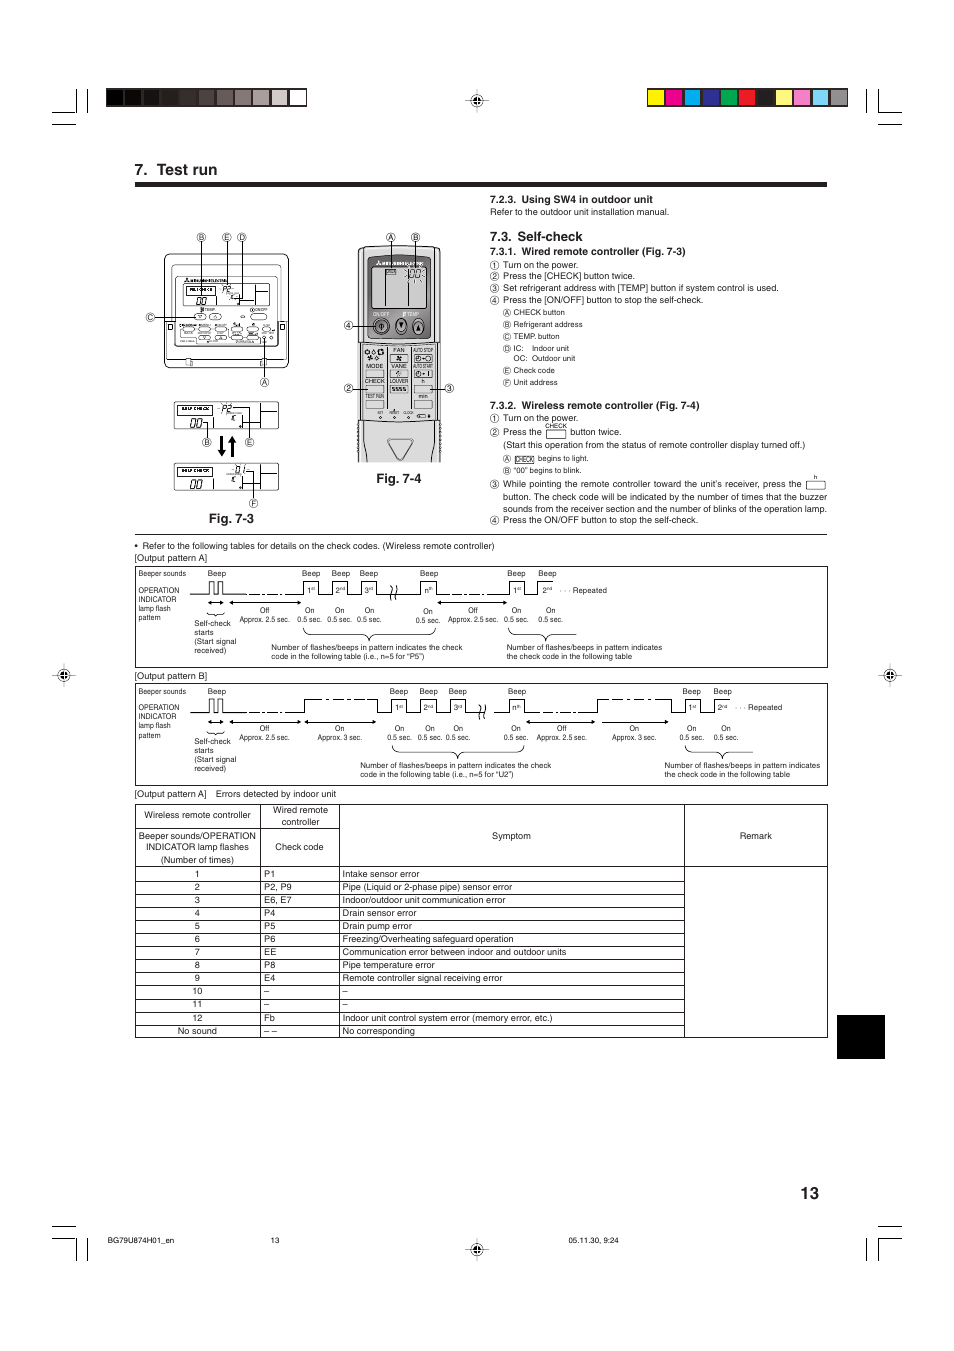 Test run, Self-check, Fig  7-4 fig  7-3 | MITSUBISHI ELECTRIC Mr